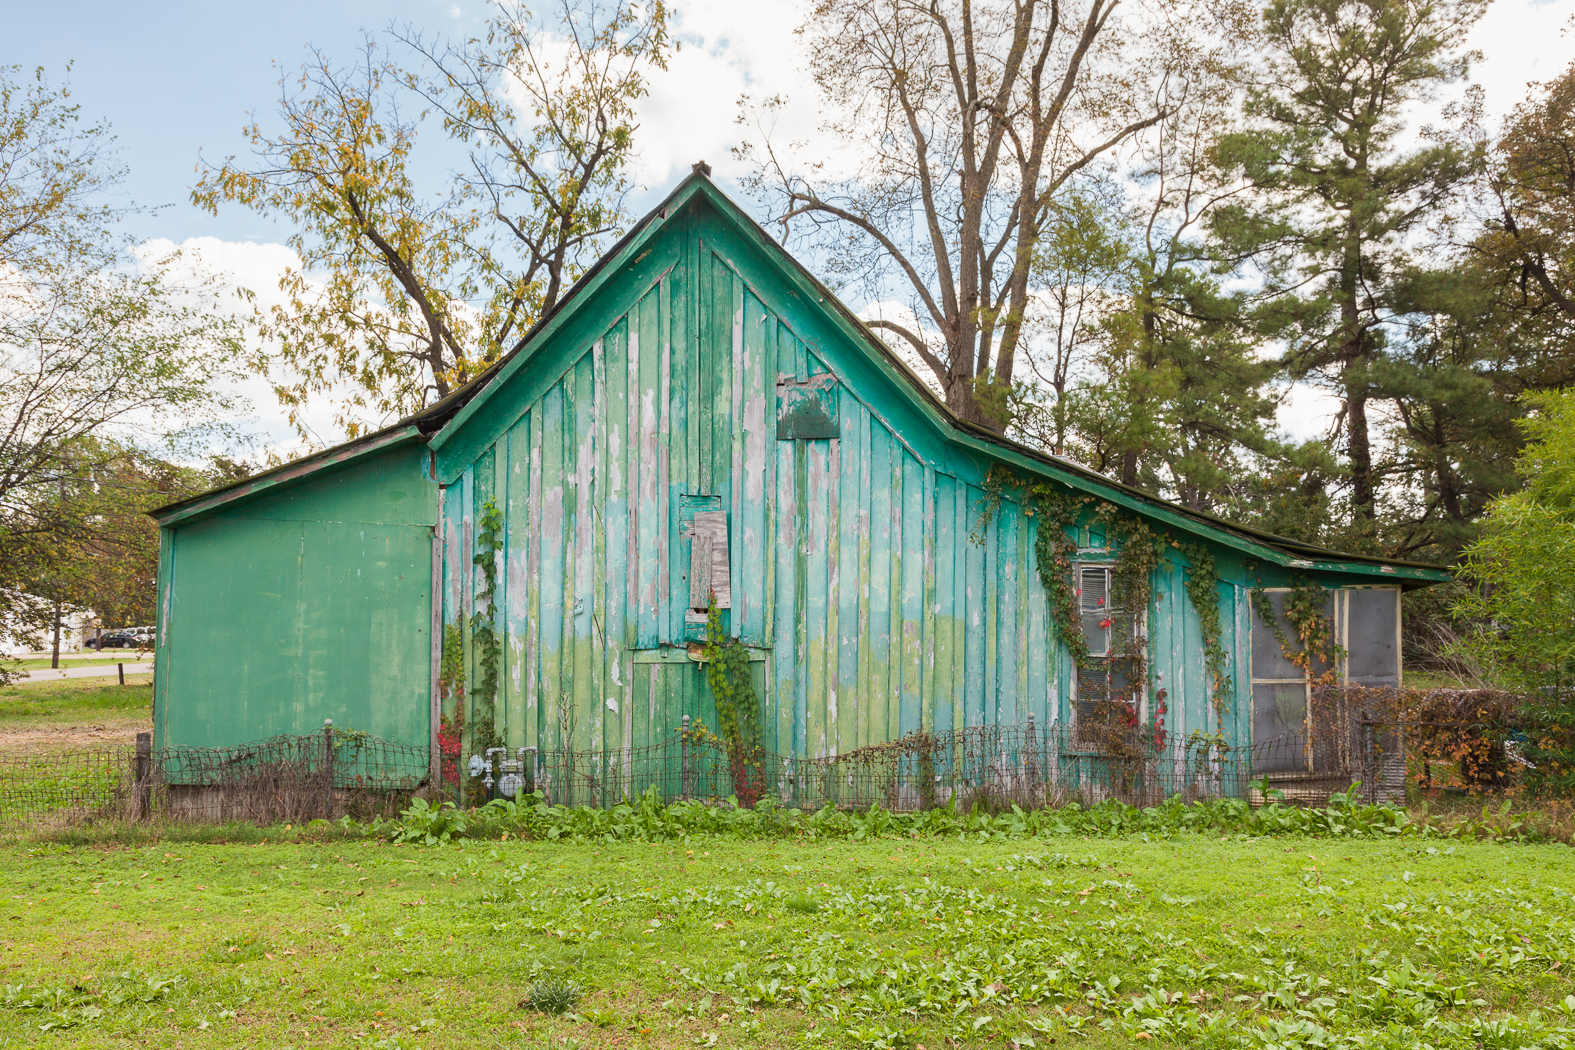 Green House, Webb, MS 2012